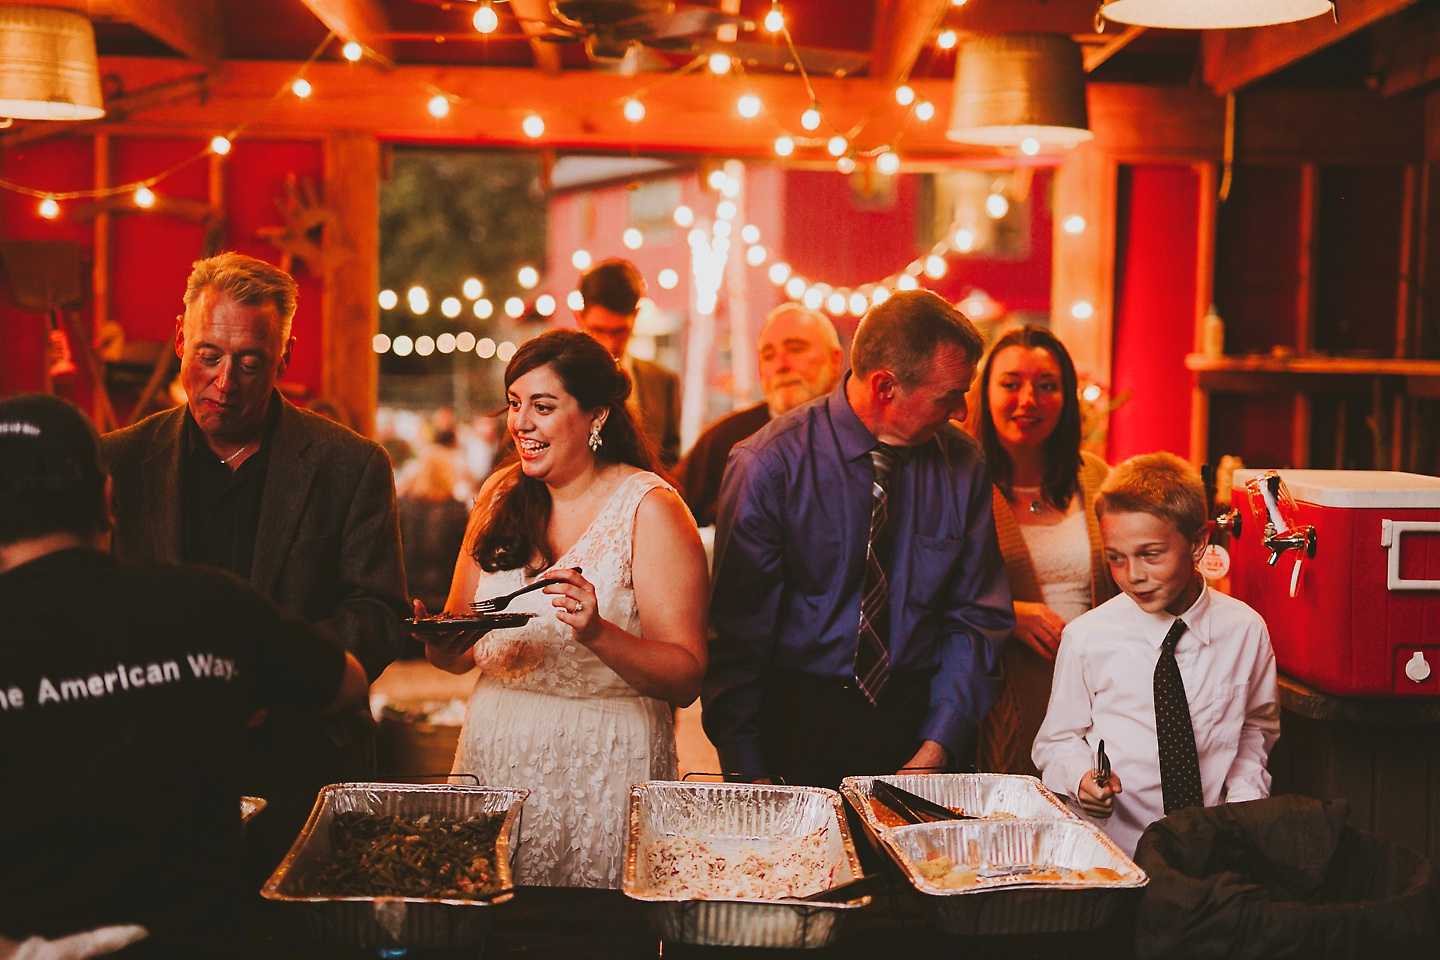 Hemlock Farm Wedding With A Red Barn And Sparklers